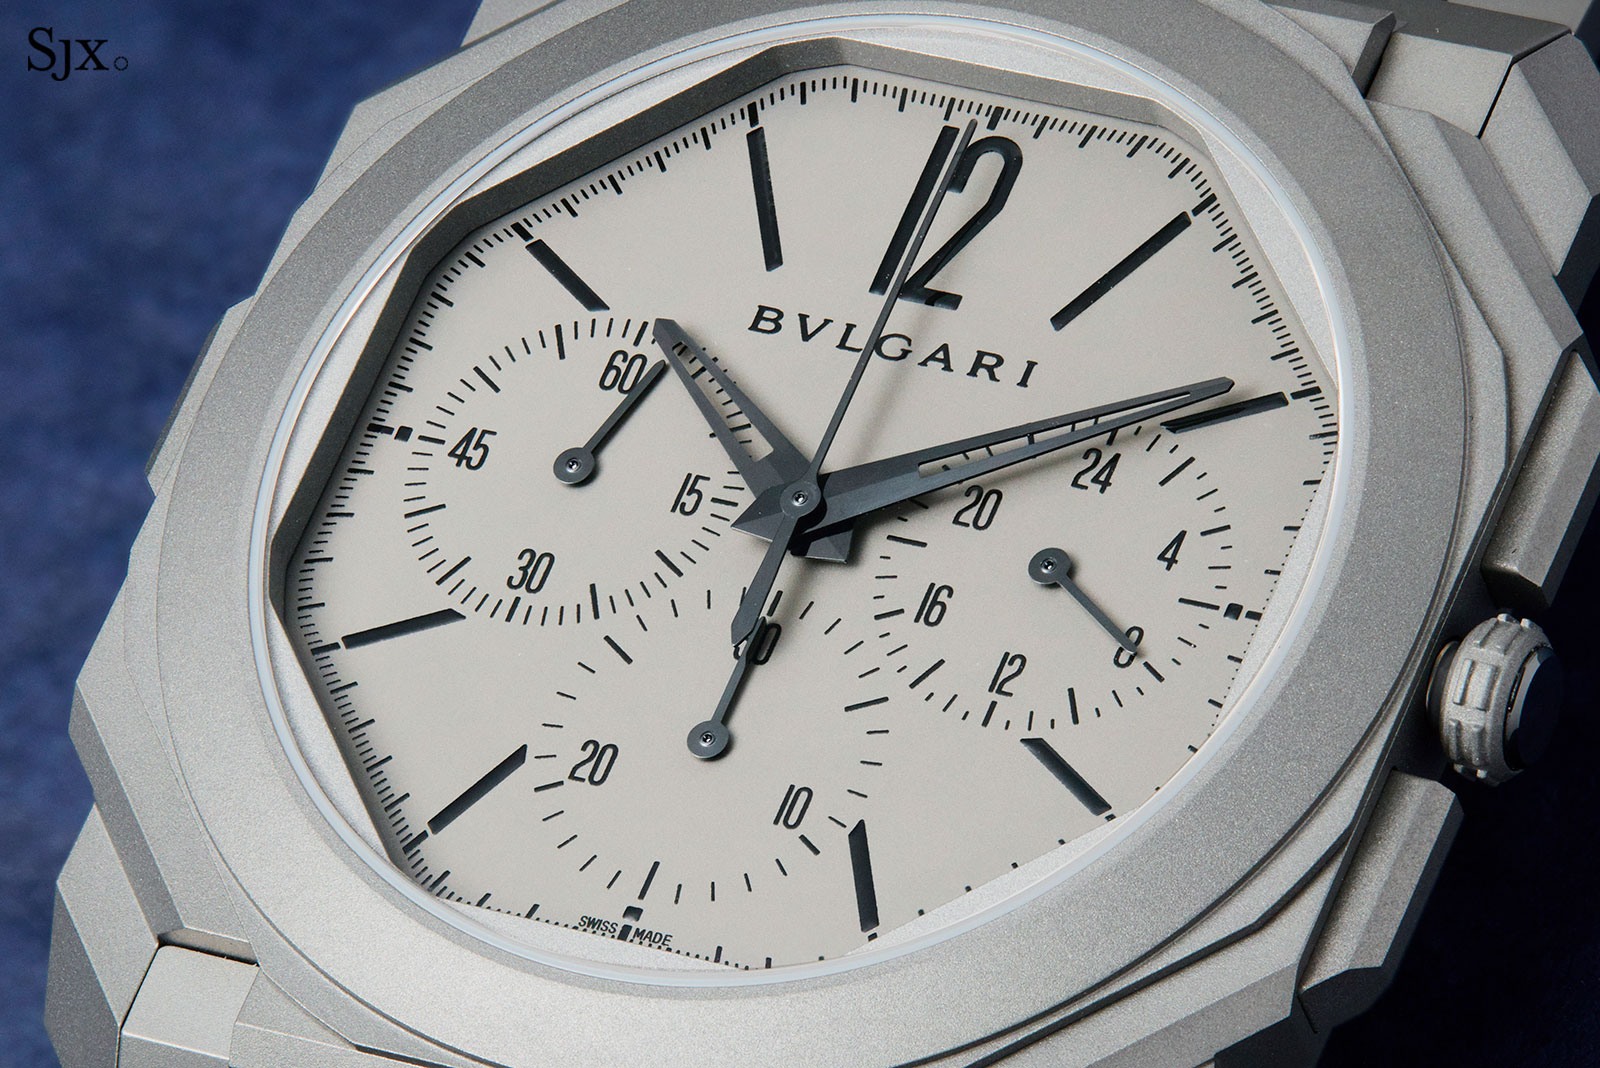 Bulgari Octo Finissimo Chronograph GMT Automatic 10